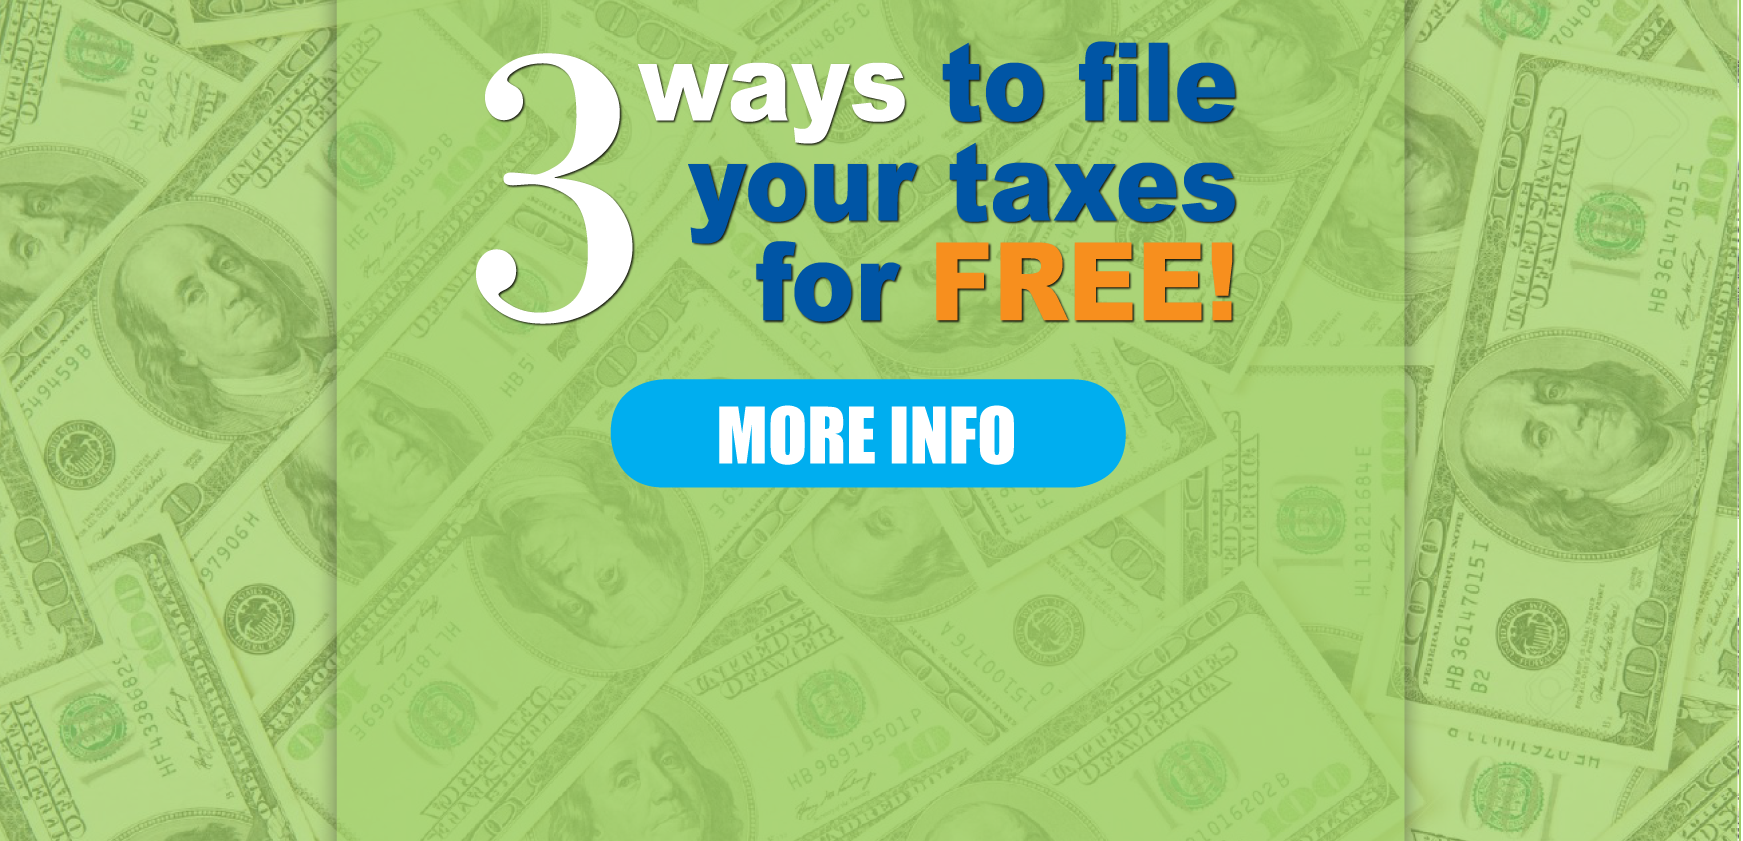 Tax deadline April 18.